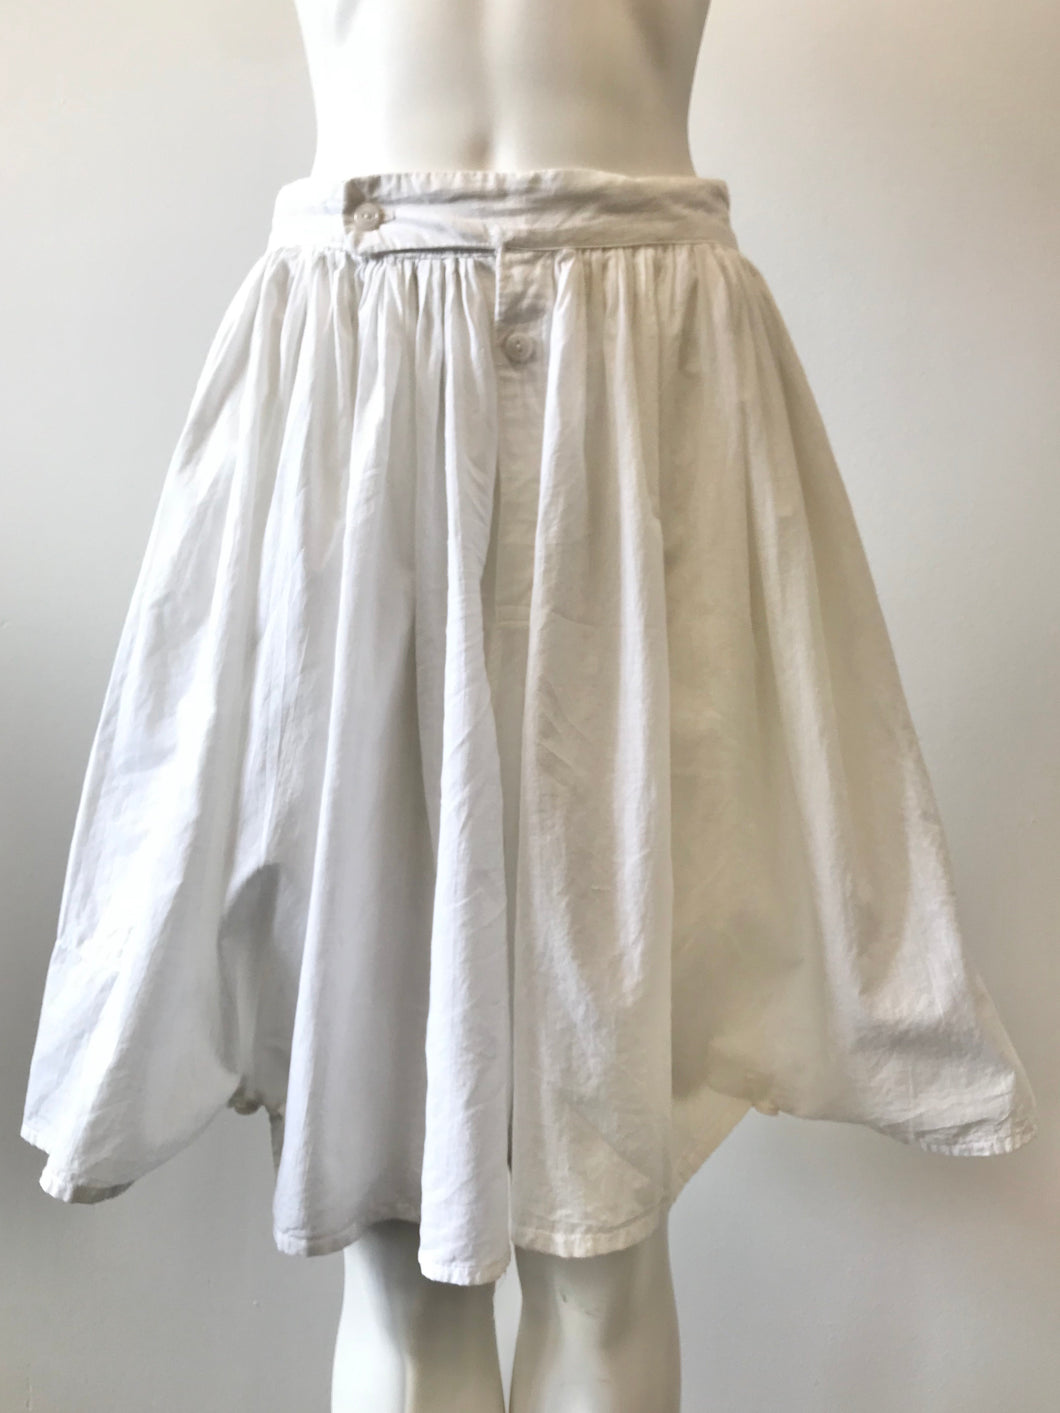 1981 White Pirate Bloomers by World's End Vivienne Westwood & Malcom McLaren